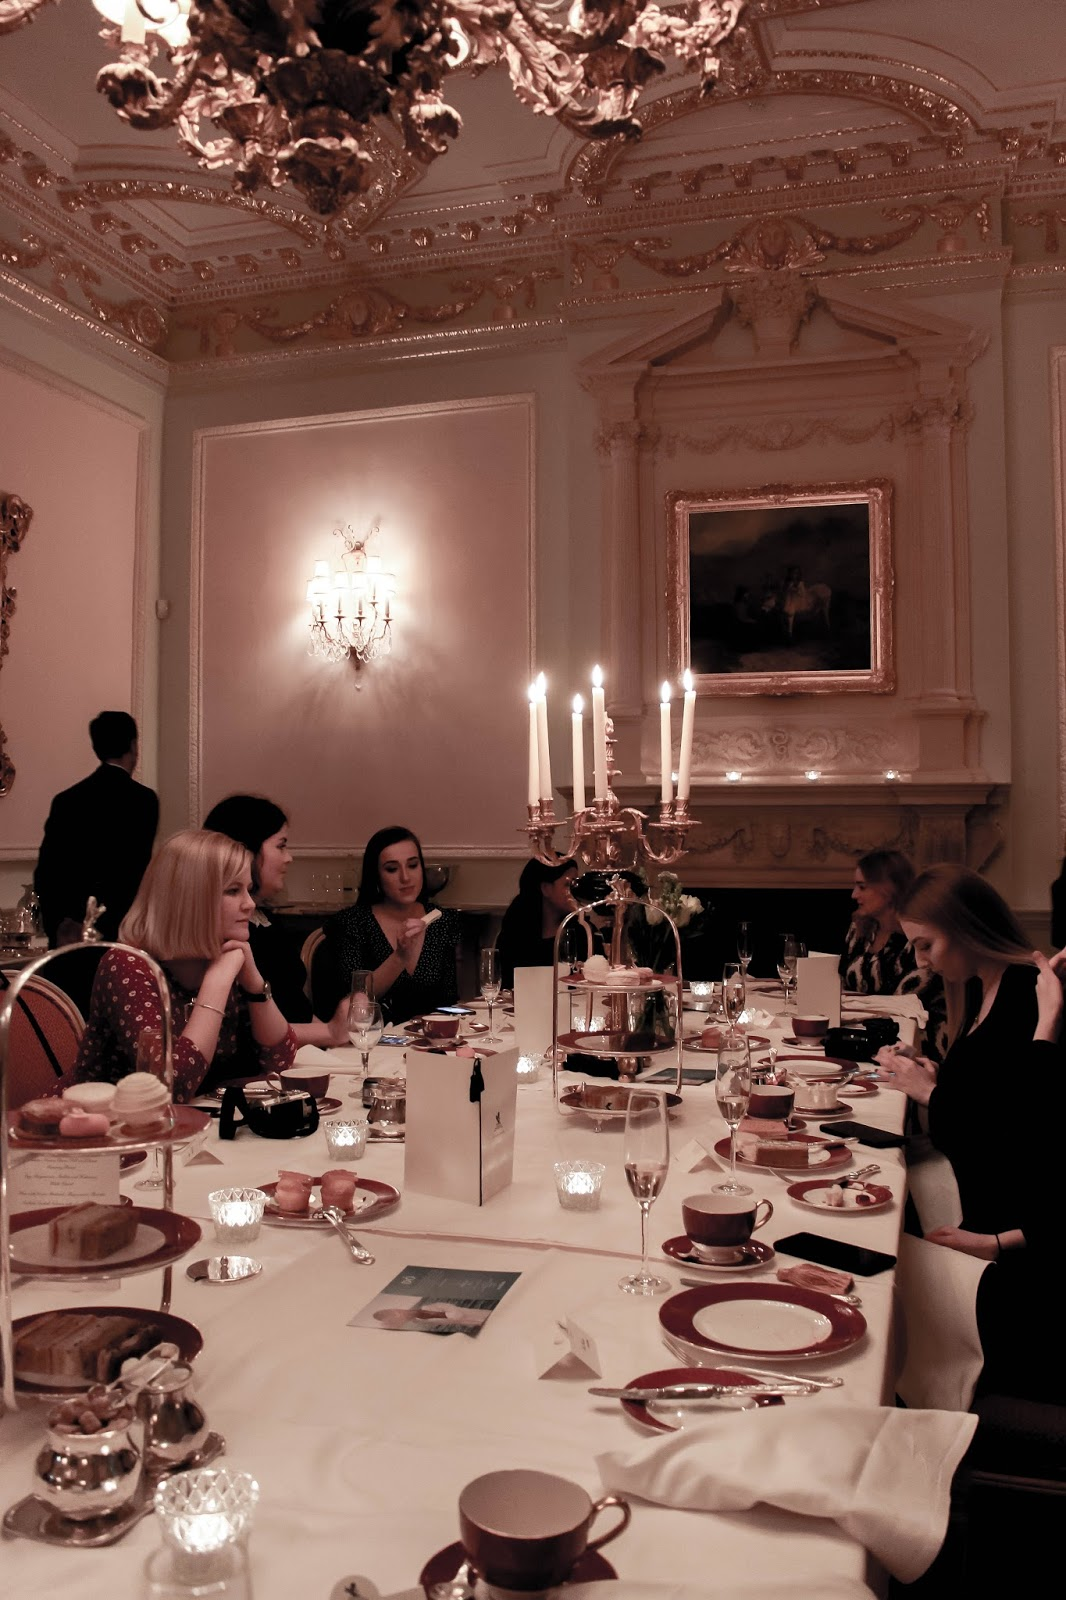 Event At The Burlington Private Dining Room at The Ritz